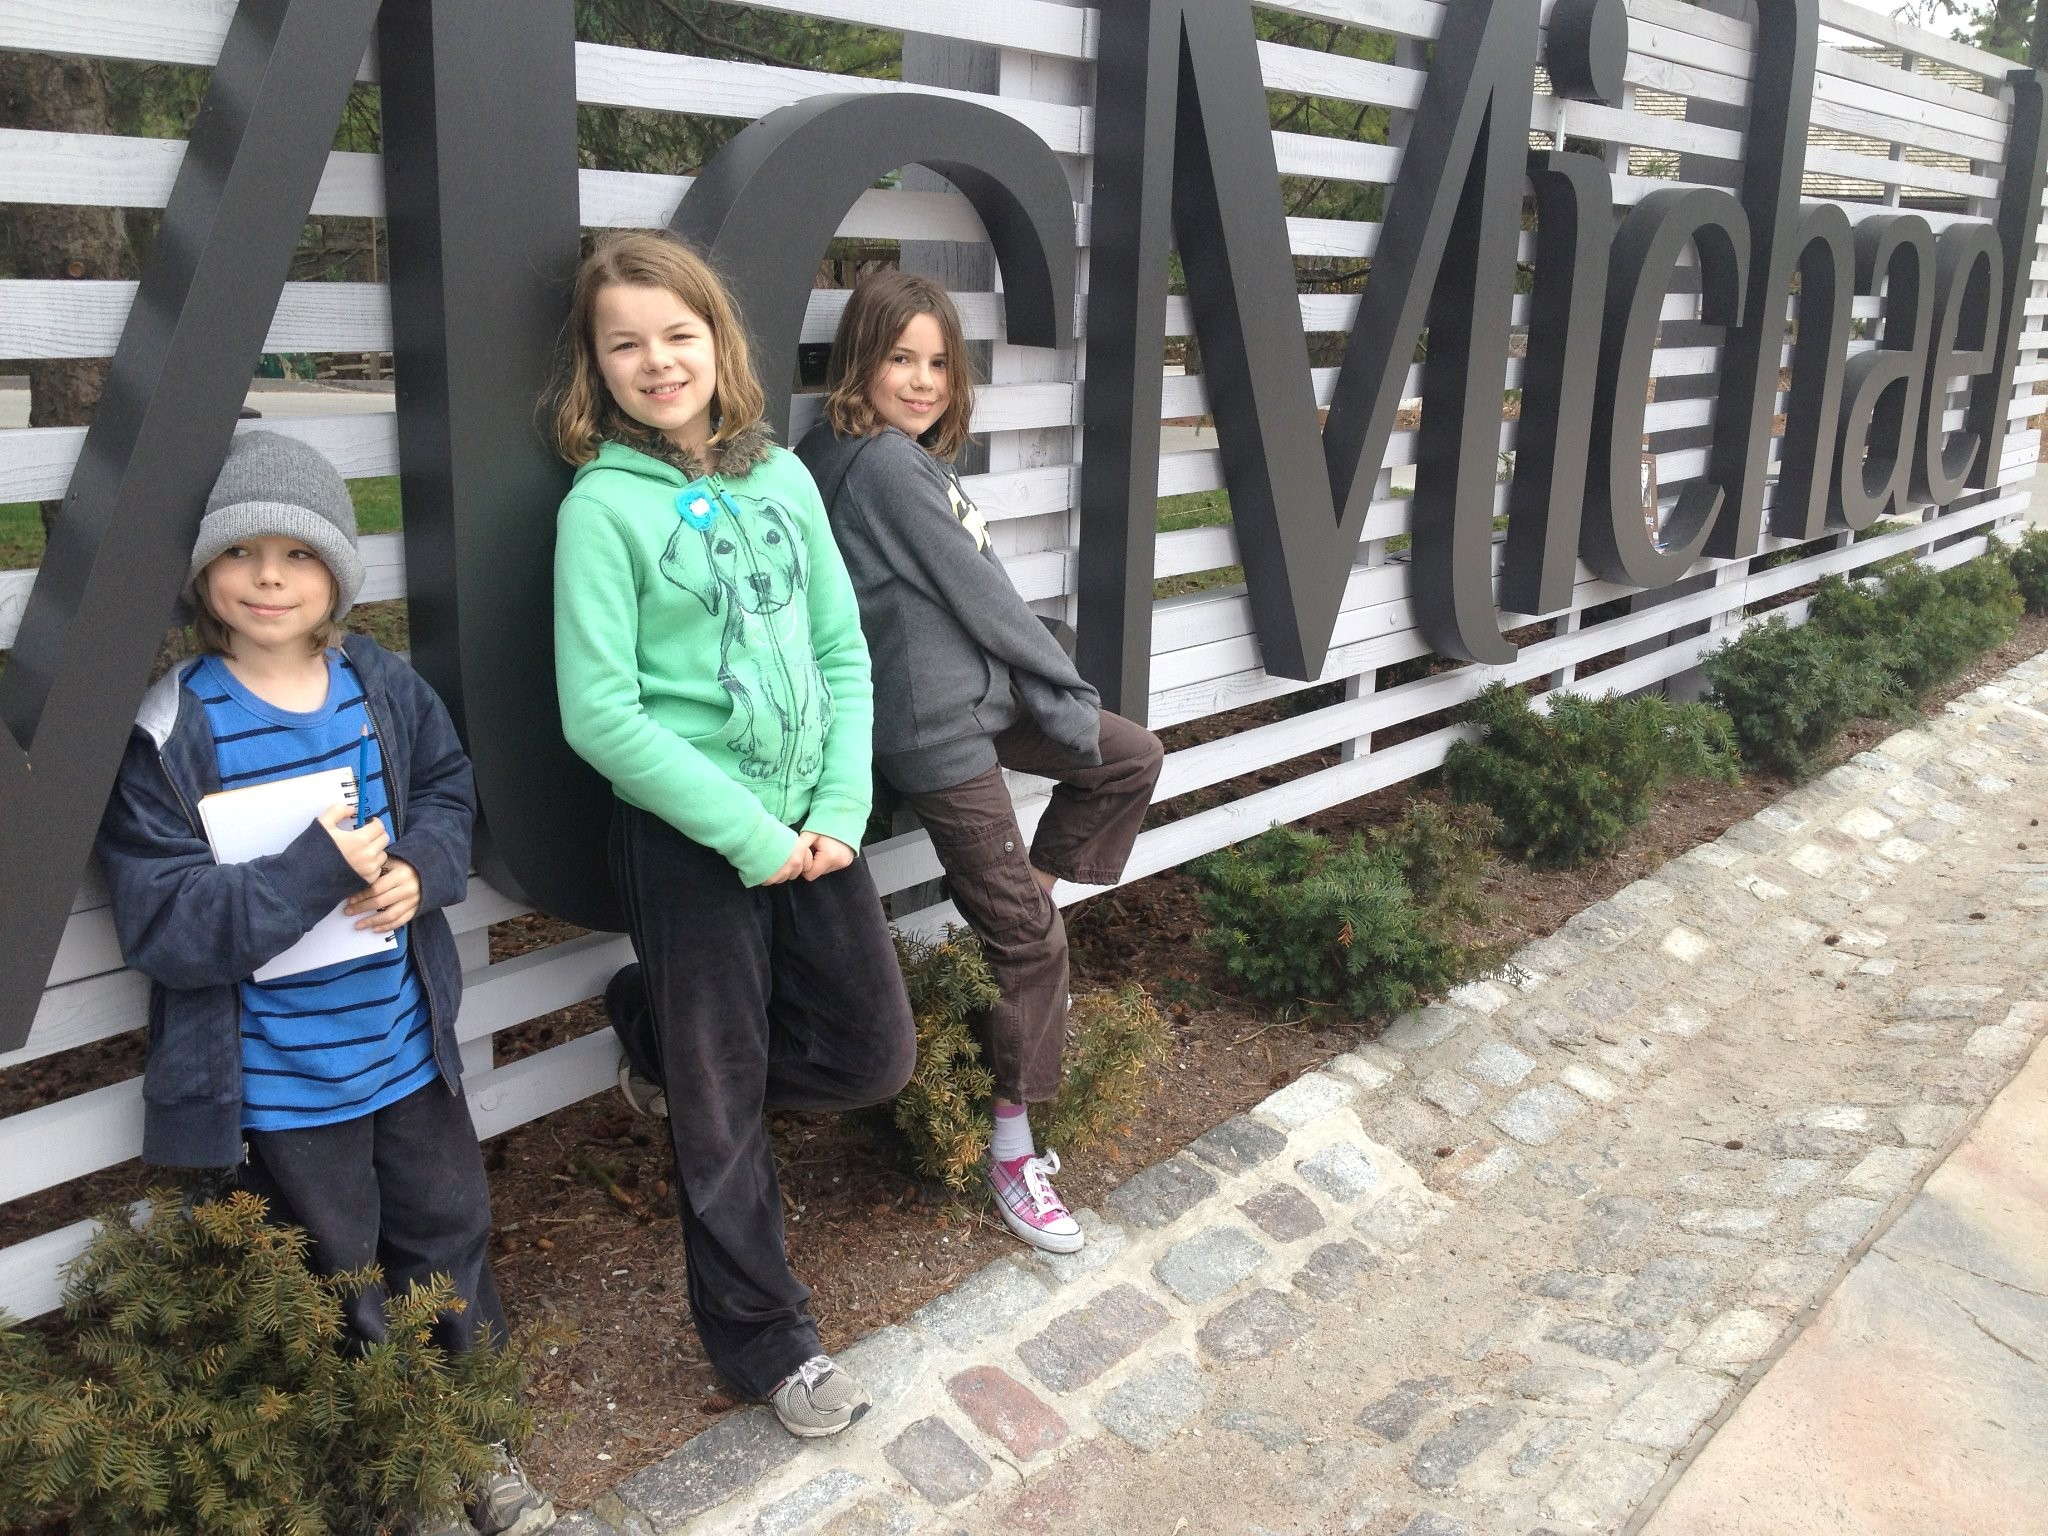 photo of three children in front of McMIchael sign